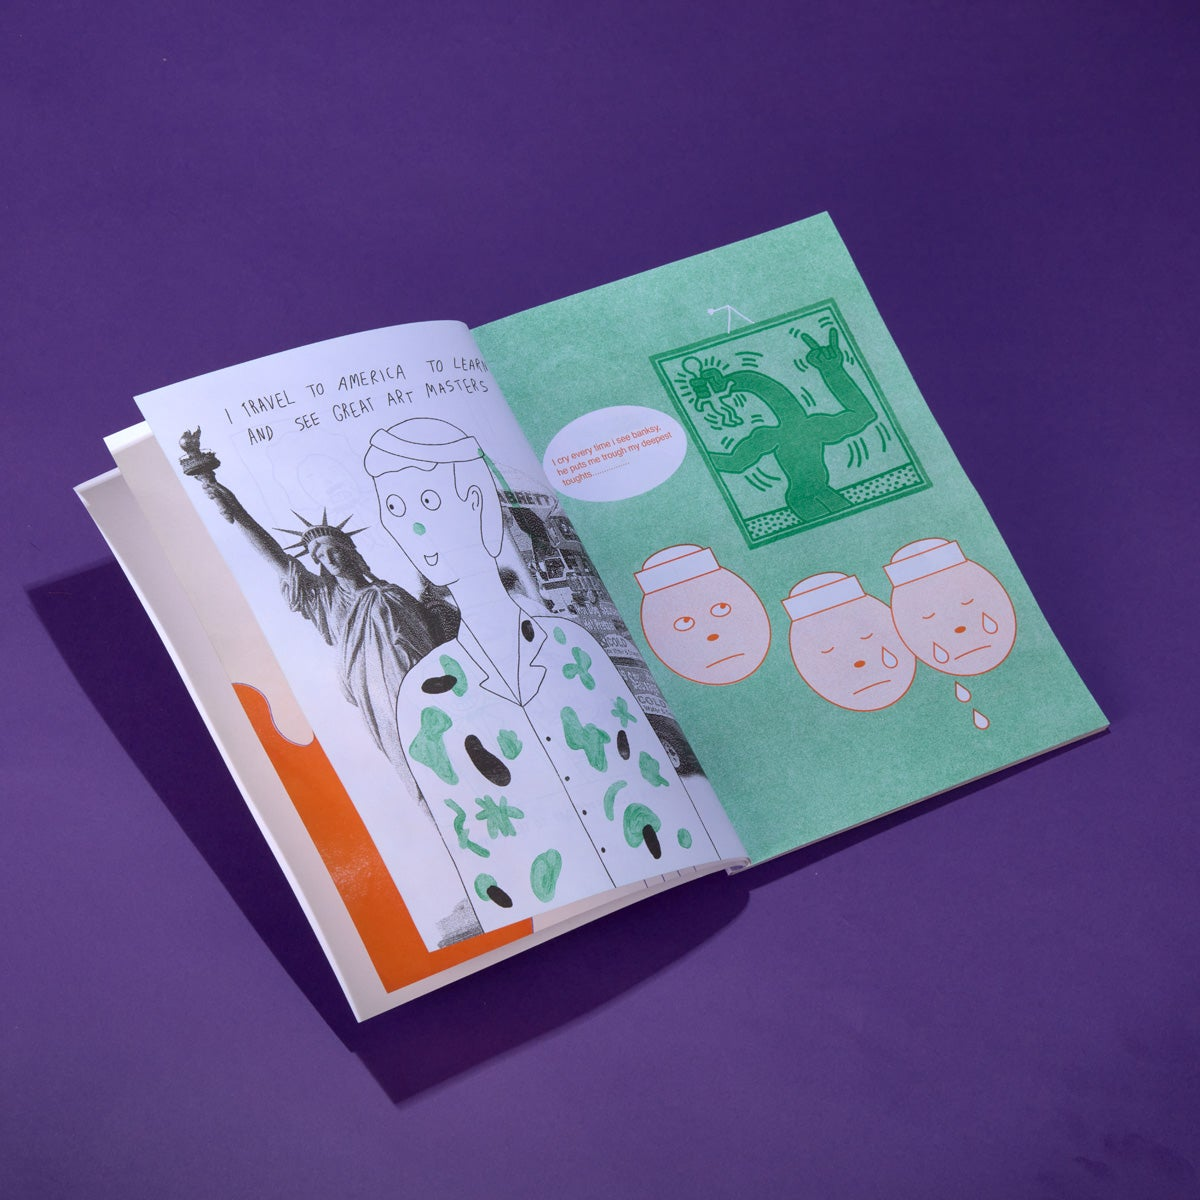 Image of I wish I was artist - Second Edition